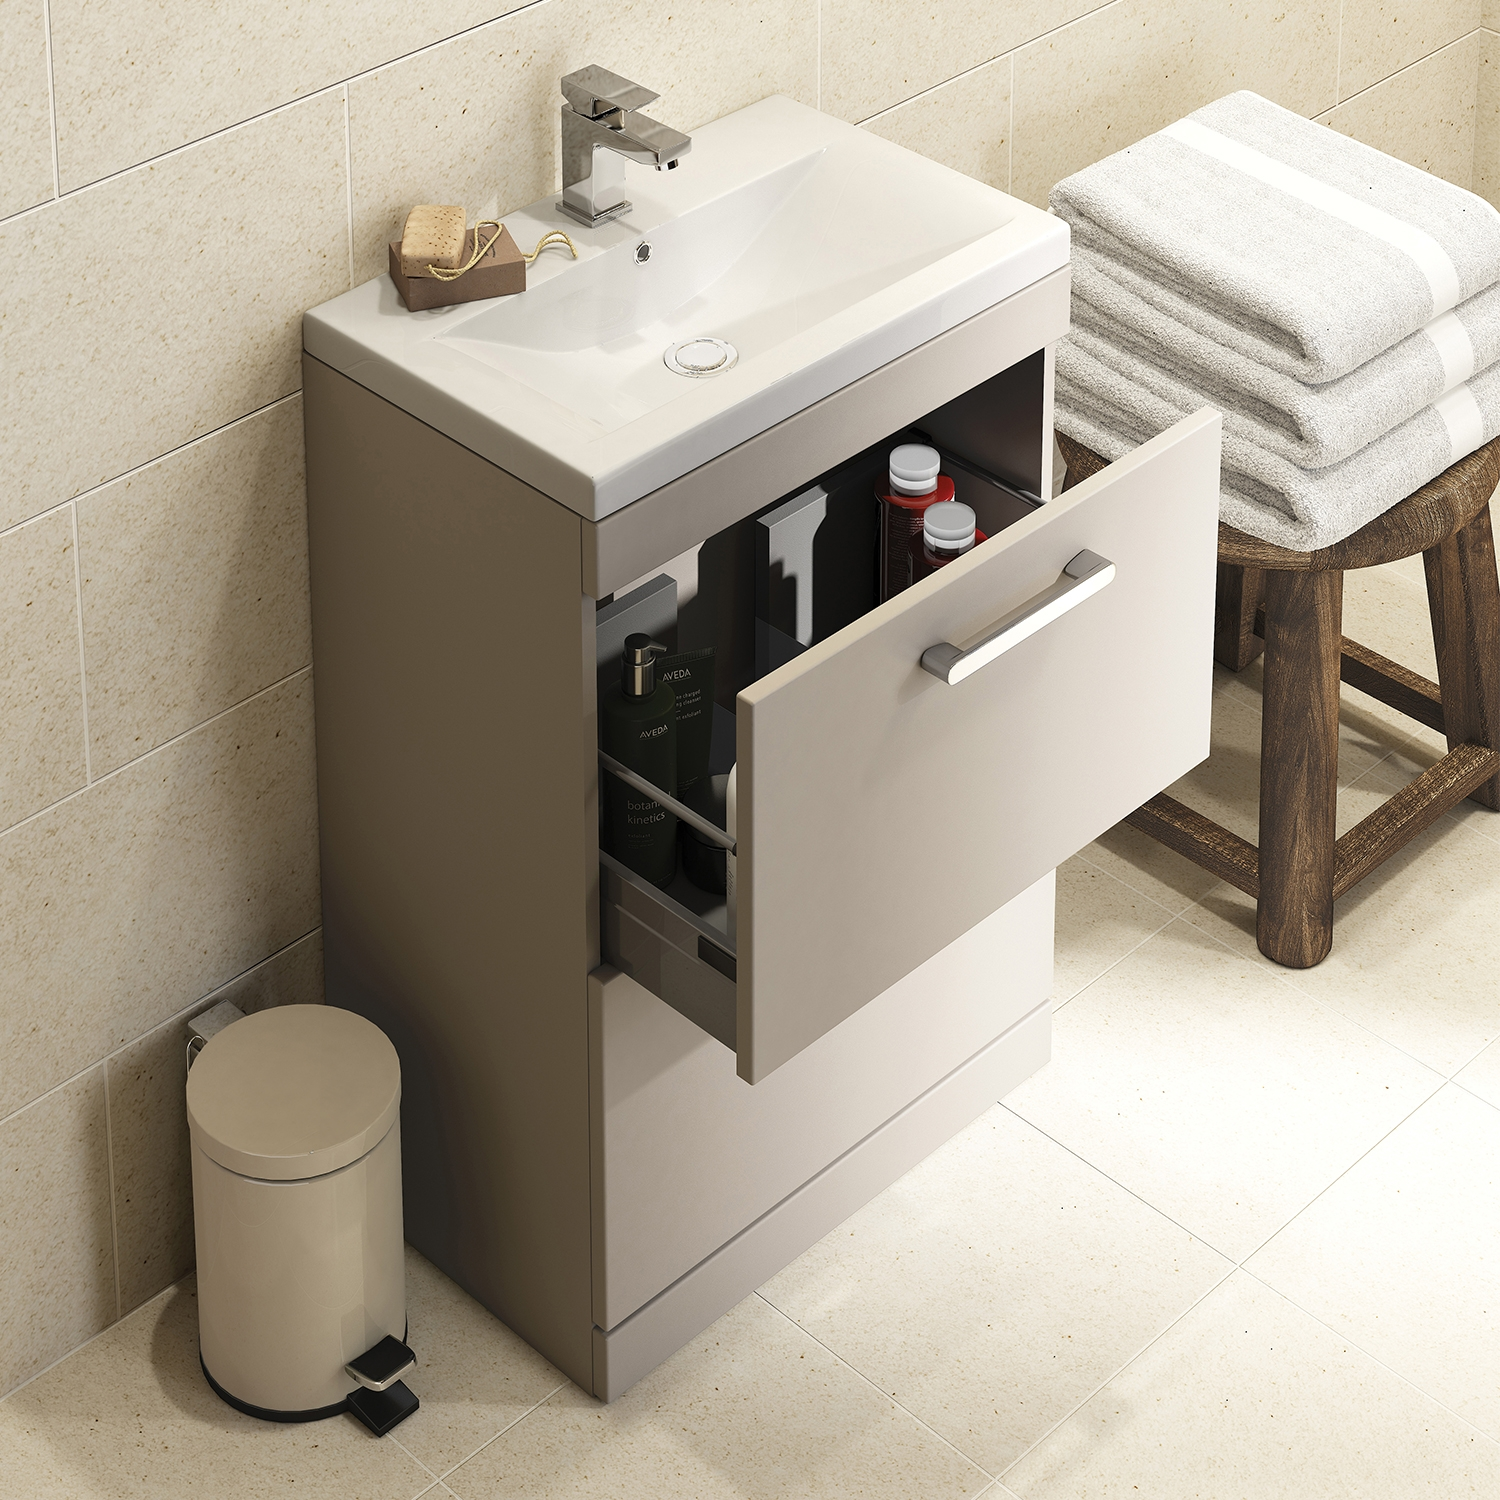 Premier Shipton Floor Standing 2-Drawer Vanity Unit with Basin 800mm Wide - Stone Grey 1 Tap Hole-0